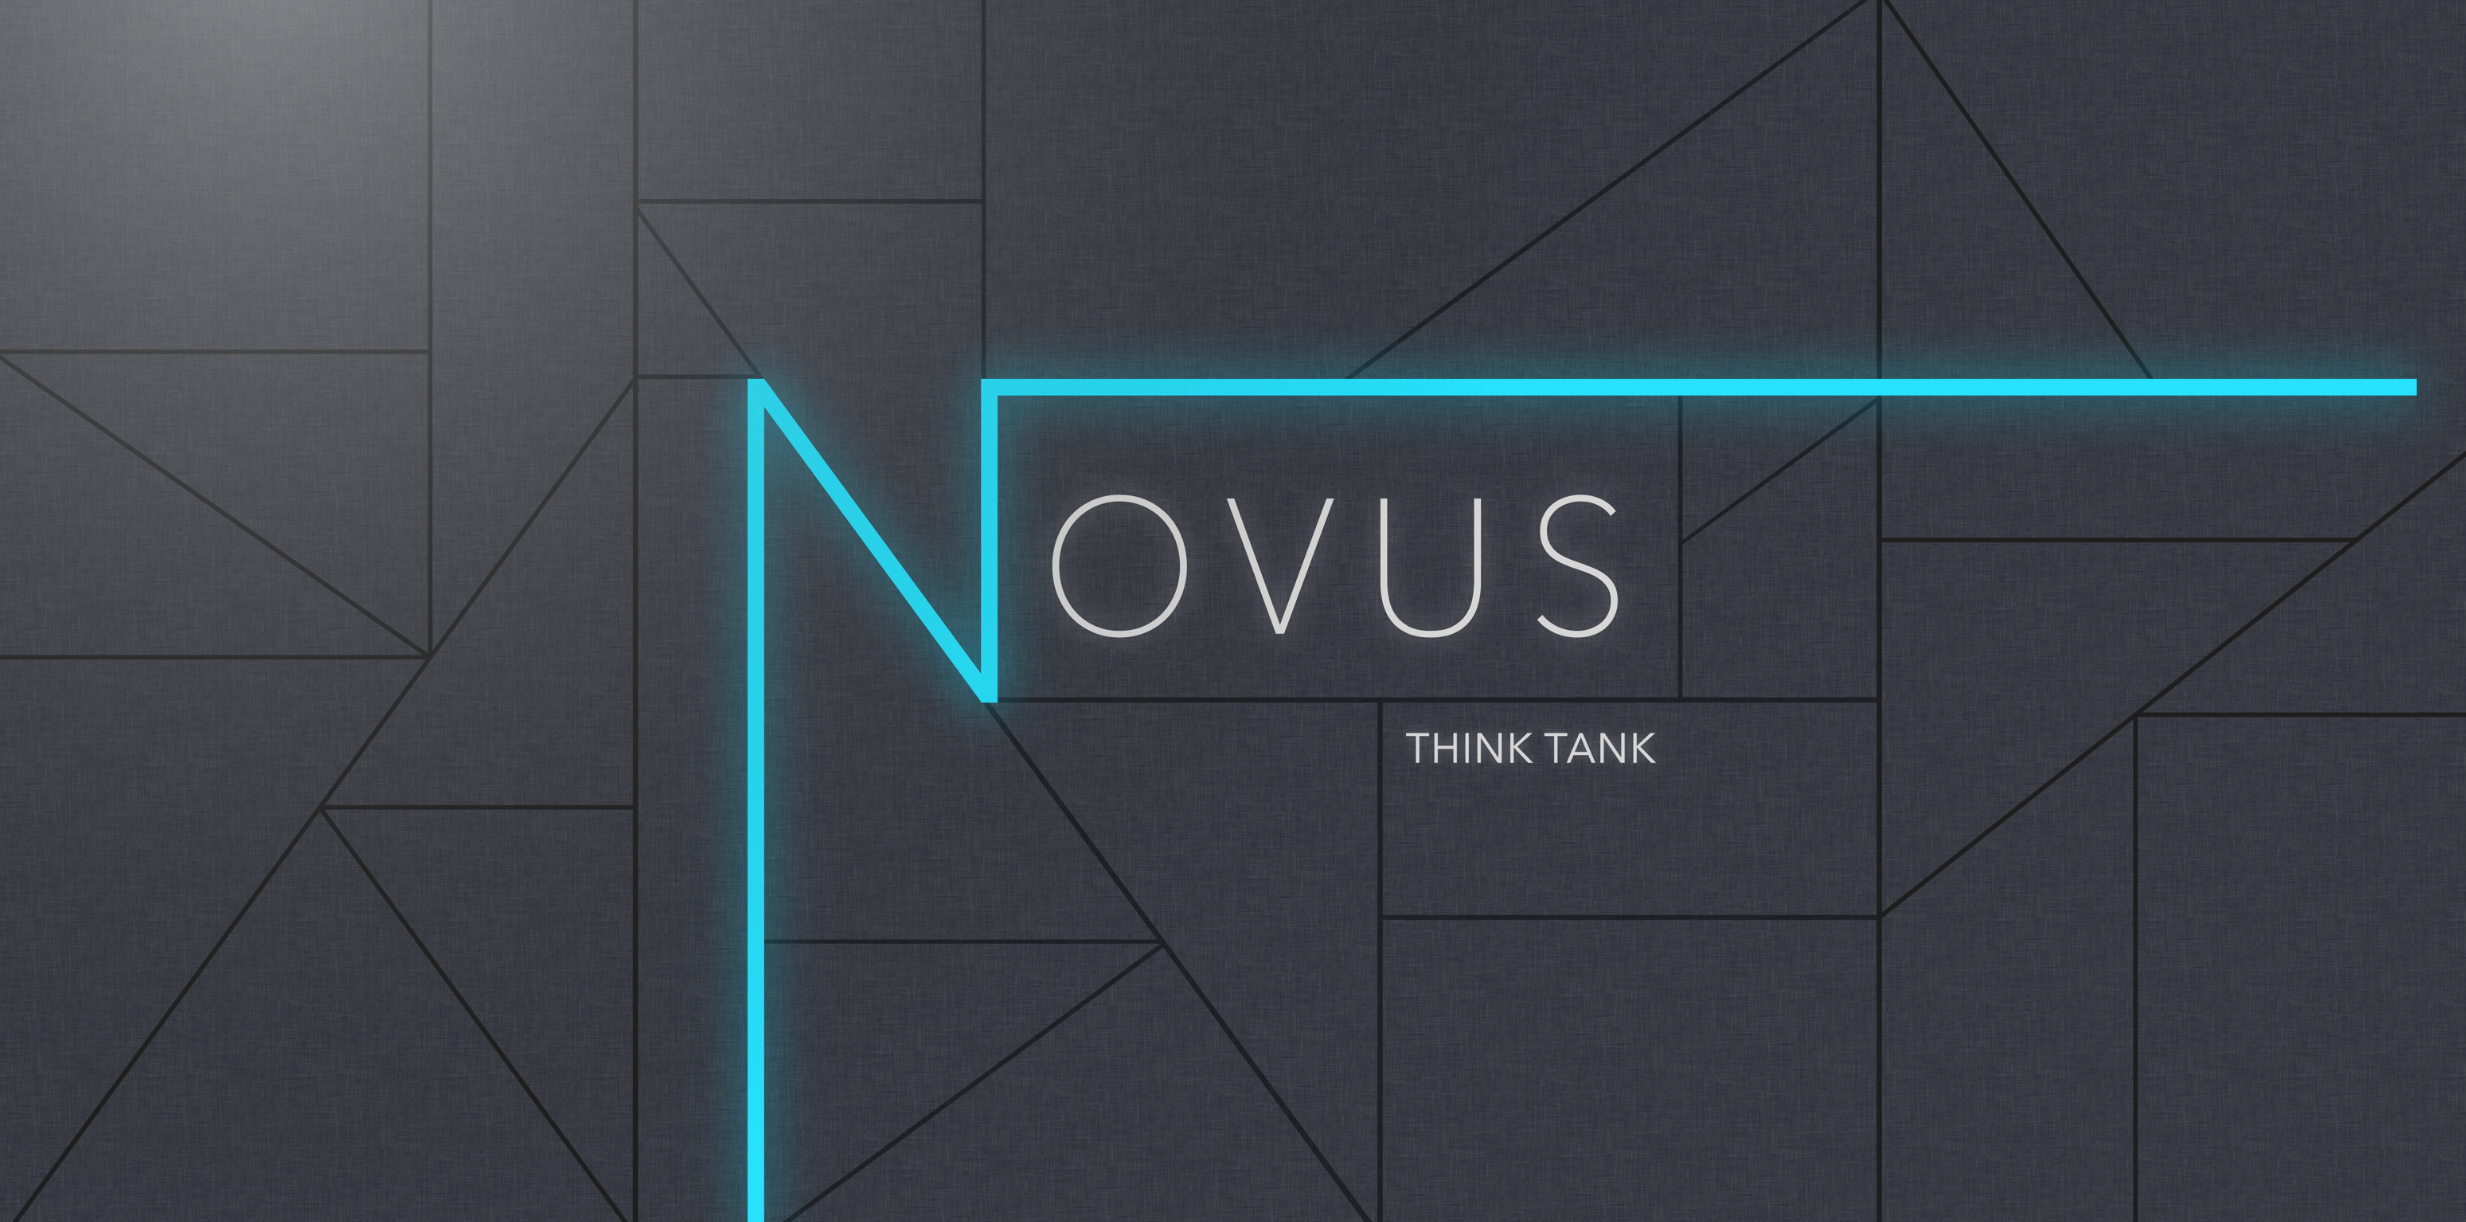 Novus Student Organization Logo [Joint Project]